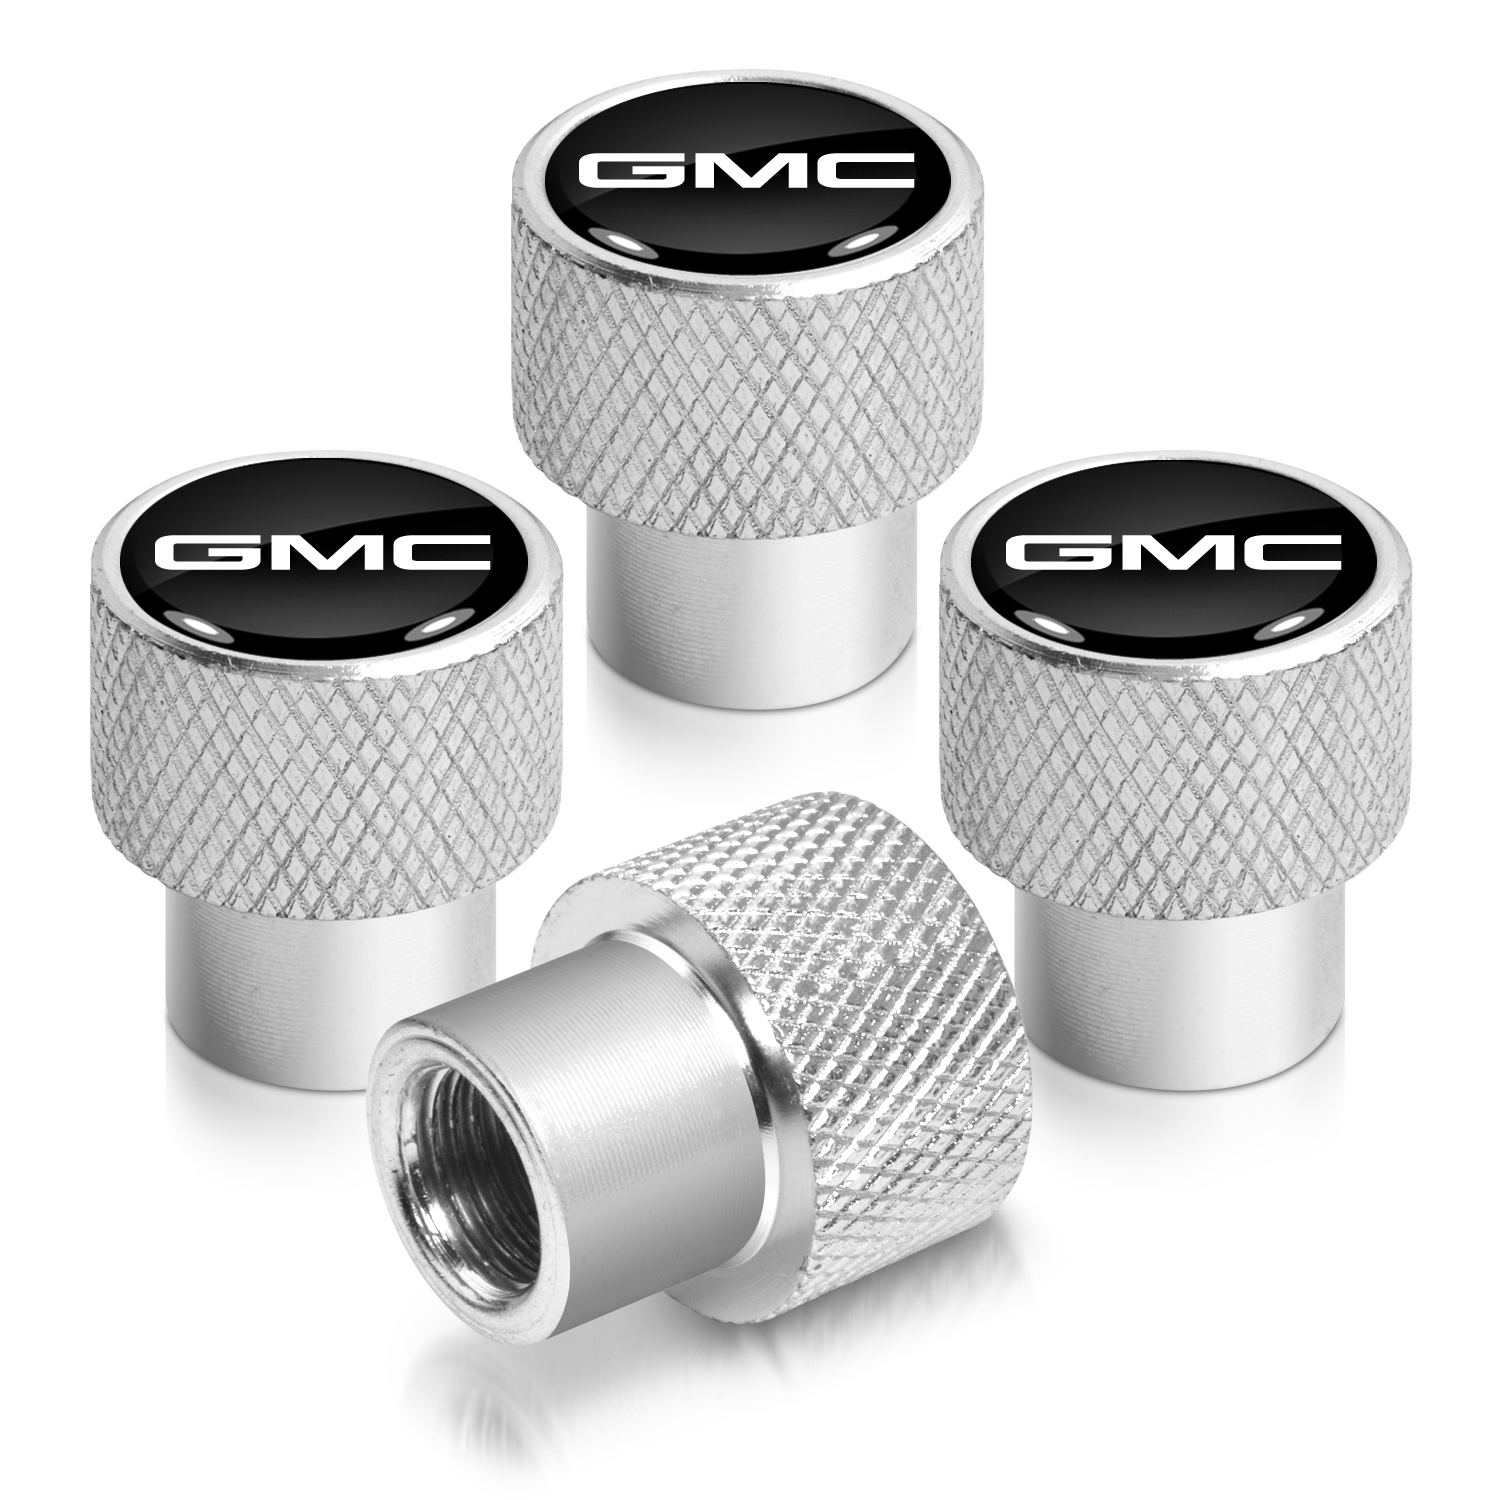 GMC Logo in Black on Shining Silver Aluminum Tire Valve Stem Caps